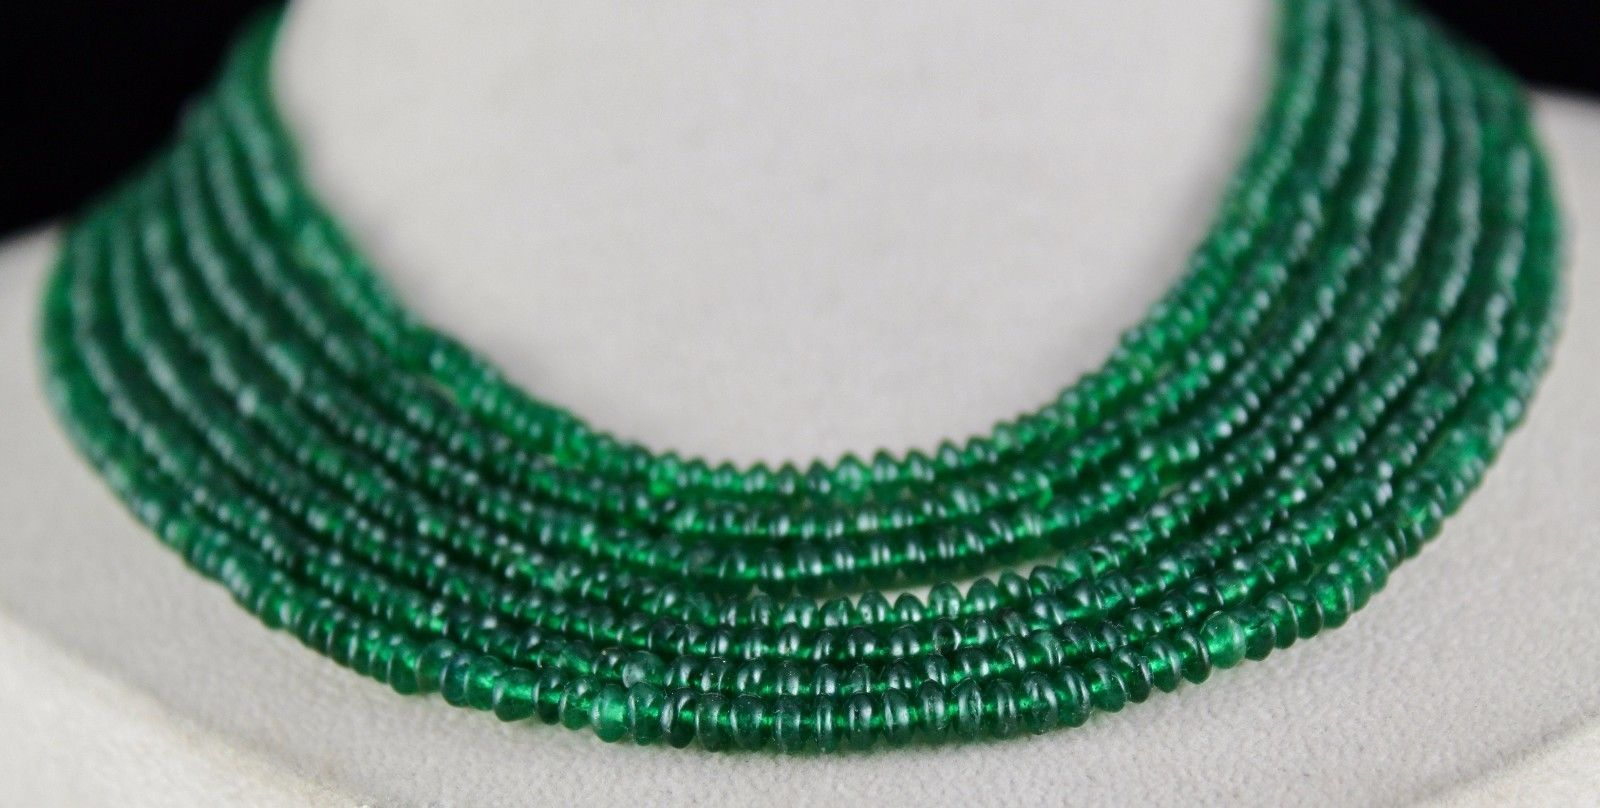 7 LINE EMERALD COLOR  NATURAL GREEN QUARTZ ROUND BEADS NECKLACE